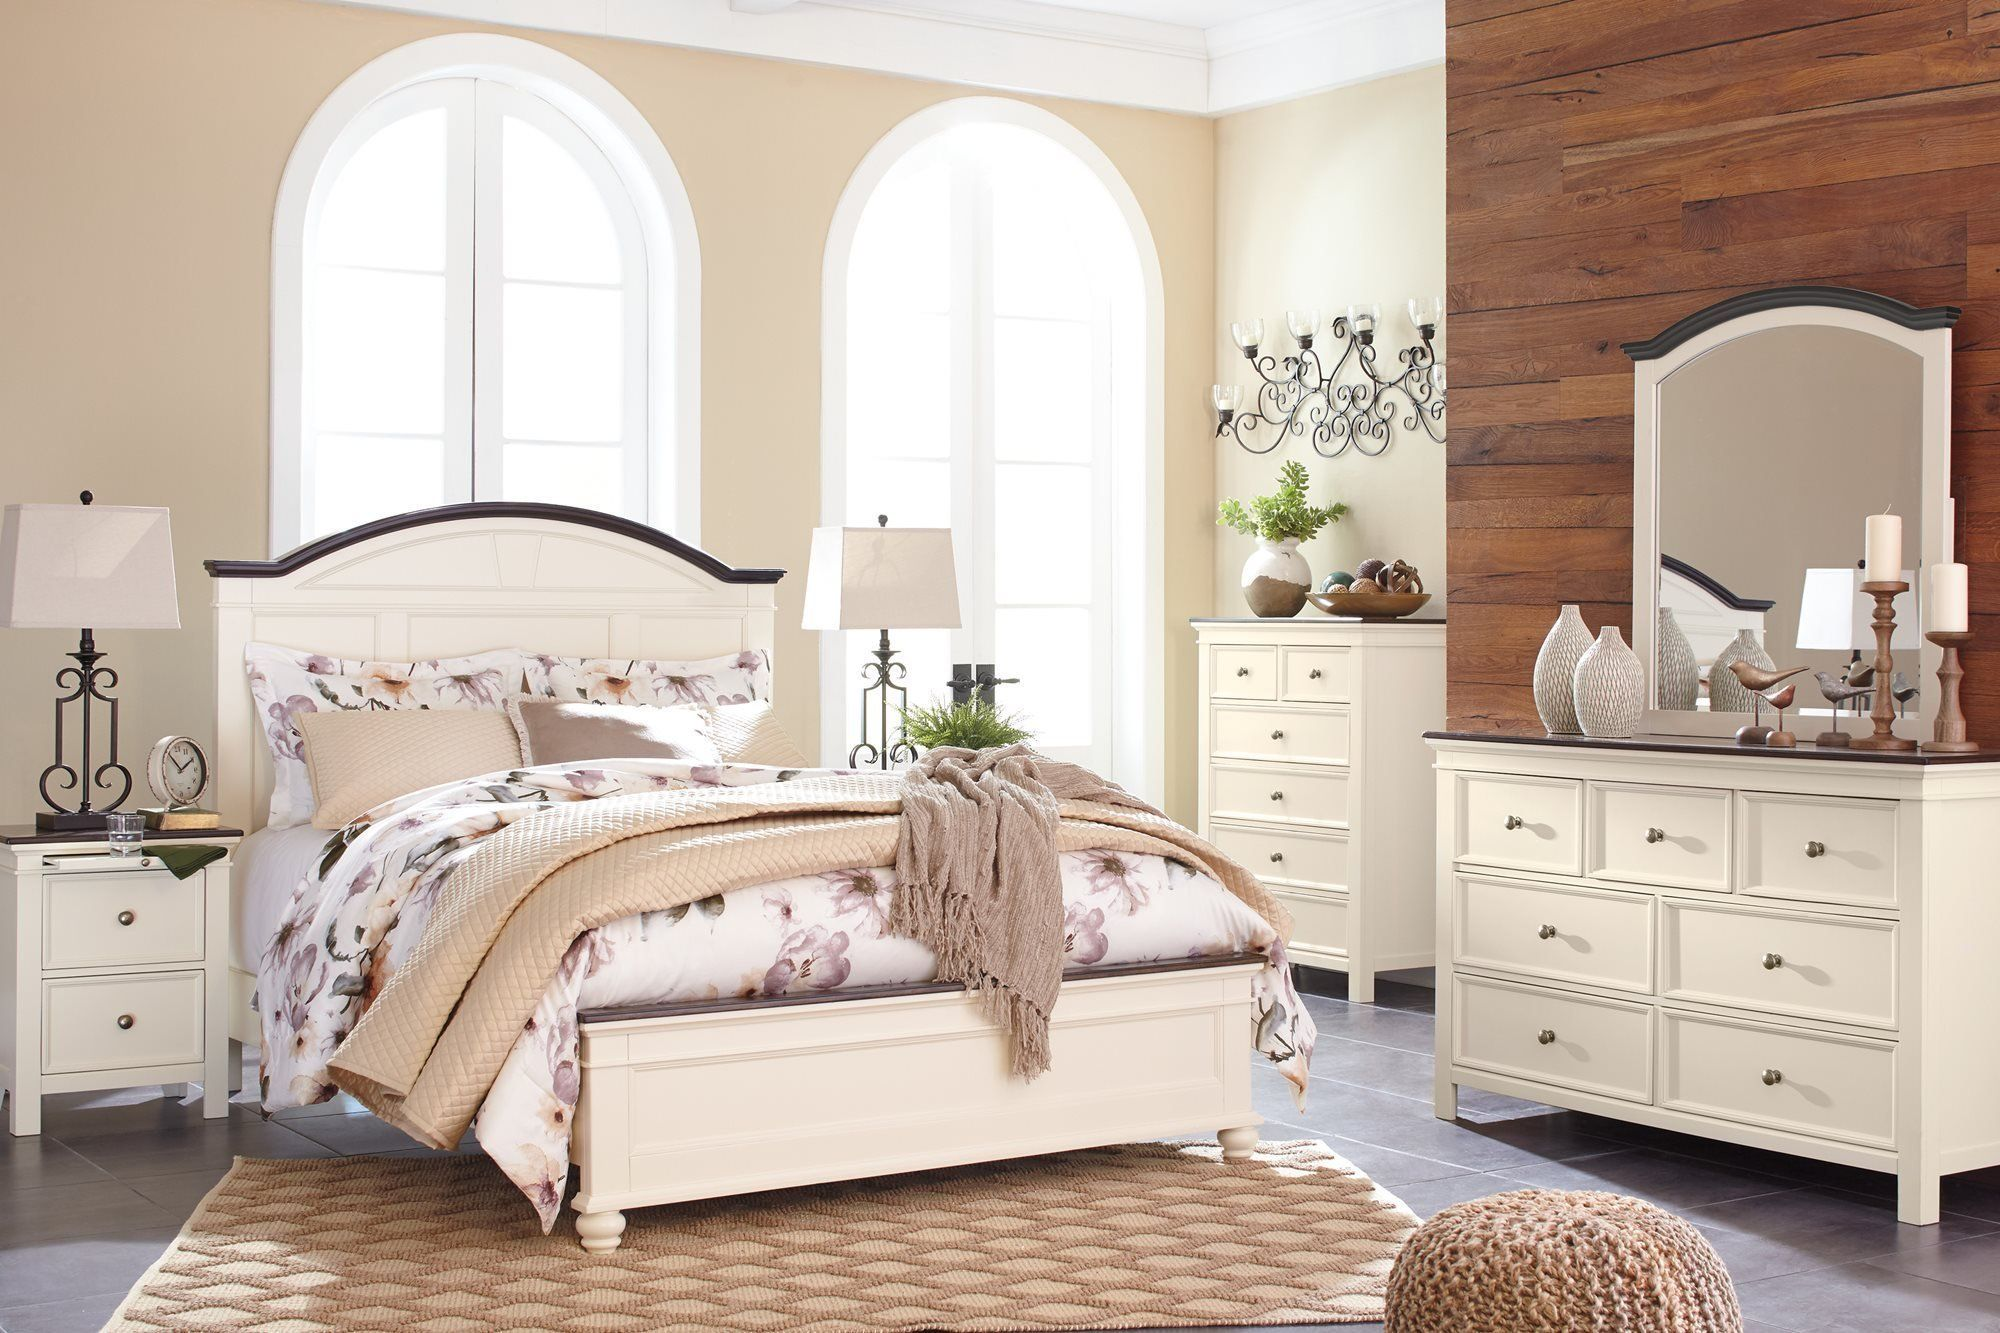 Ashley woodanville 5pc bedroom set queen panel bed dresser mirror one nightstand chest in white brown continue to the product at the image link